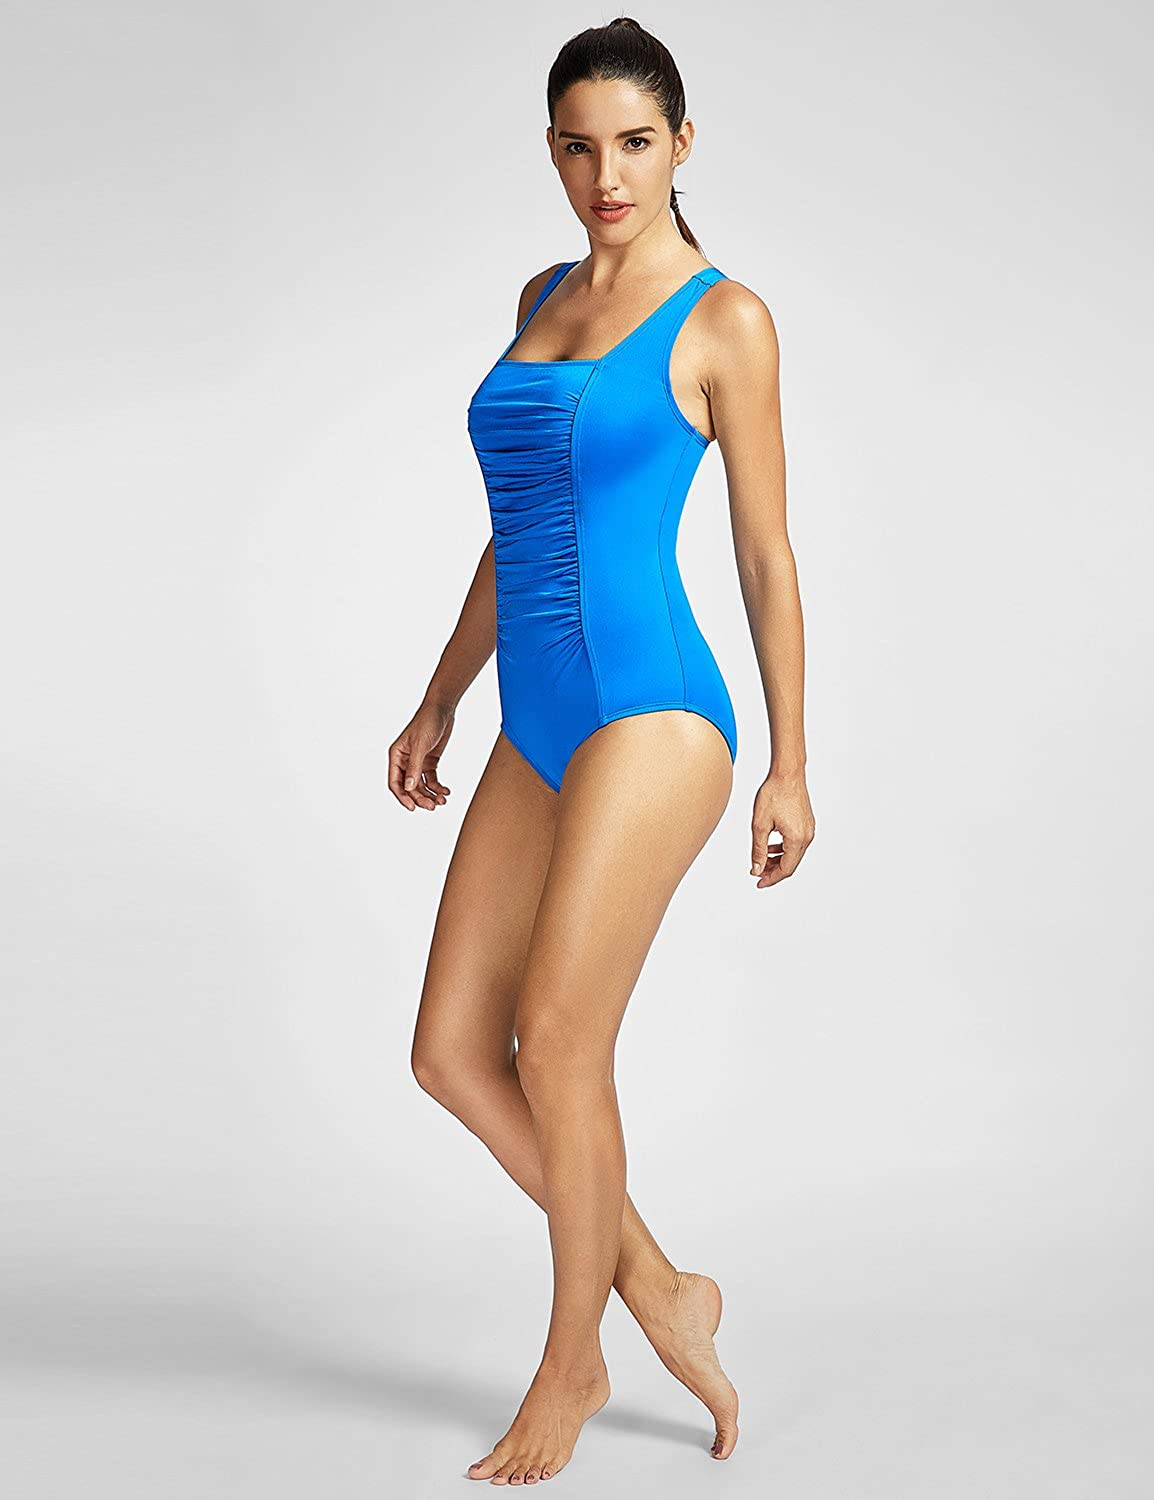 SYROKAN Womens Maillot Shirred Tummy Control Athletic Training One Piece Swimsuits